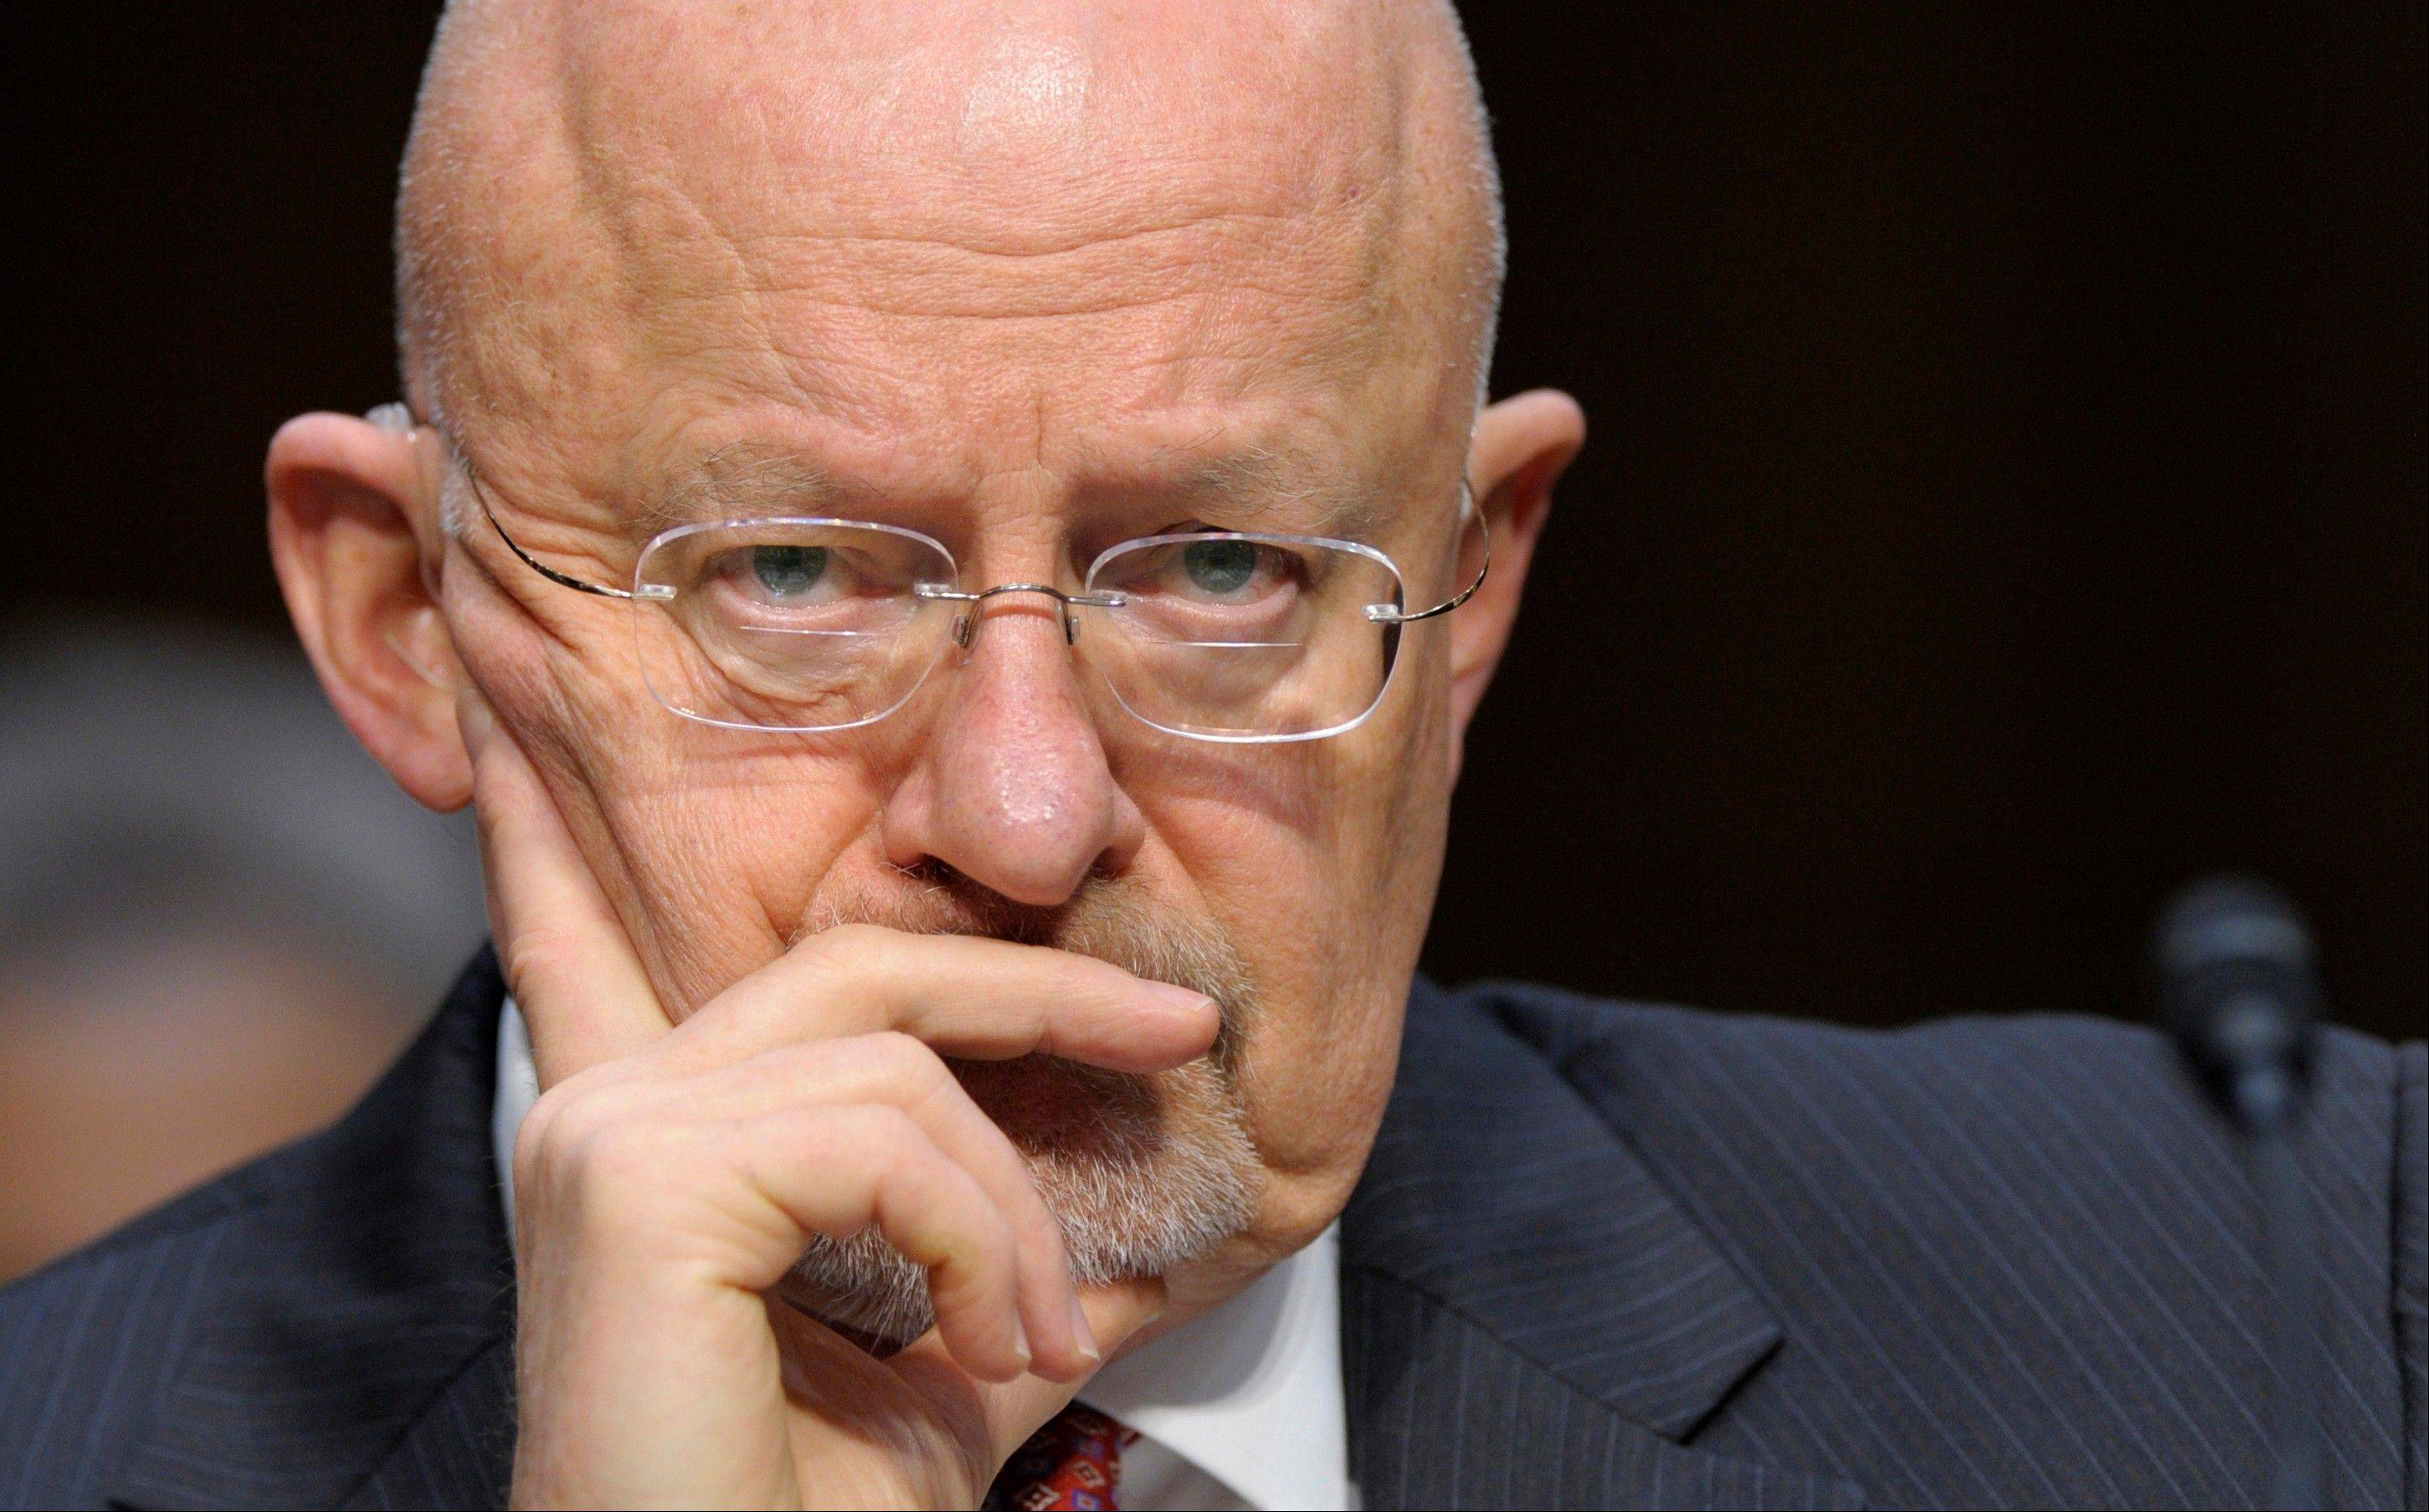 Director of National Intelligence James Clapper delivered the U.S. intelligence community�s overview of global threats posed by terrorism, cyber attacks, weapons of mass destruction, the months-long civil war in Syria and the unsettled situation in post-Arab Spring nations.